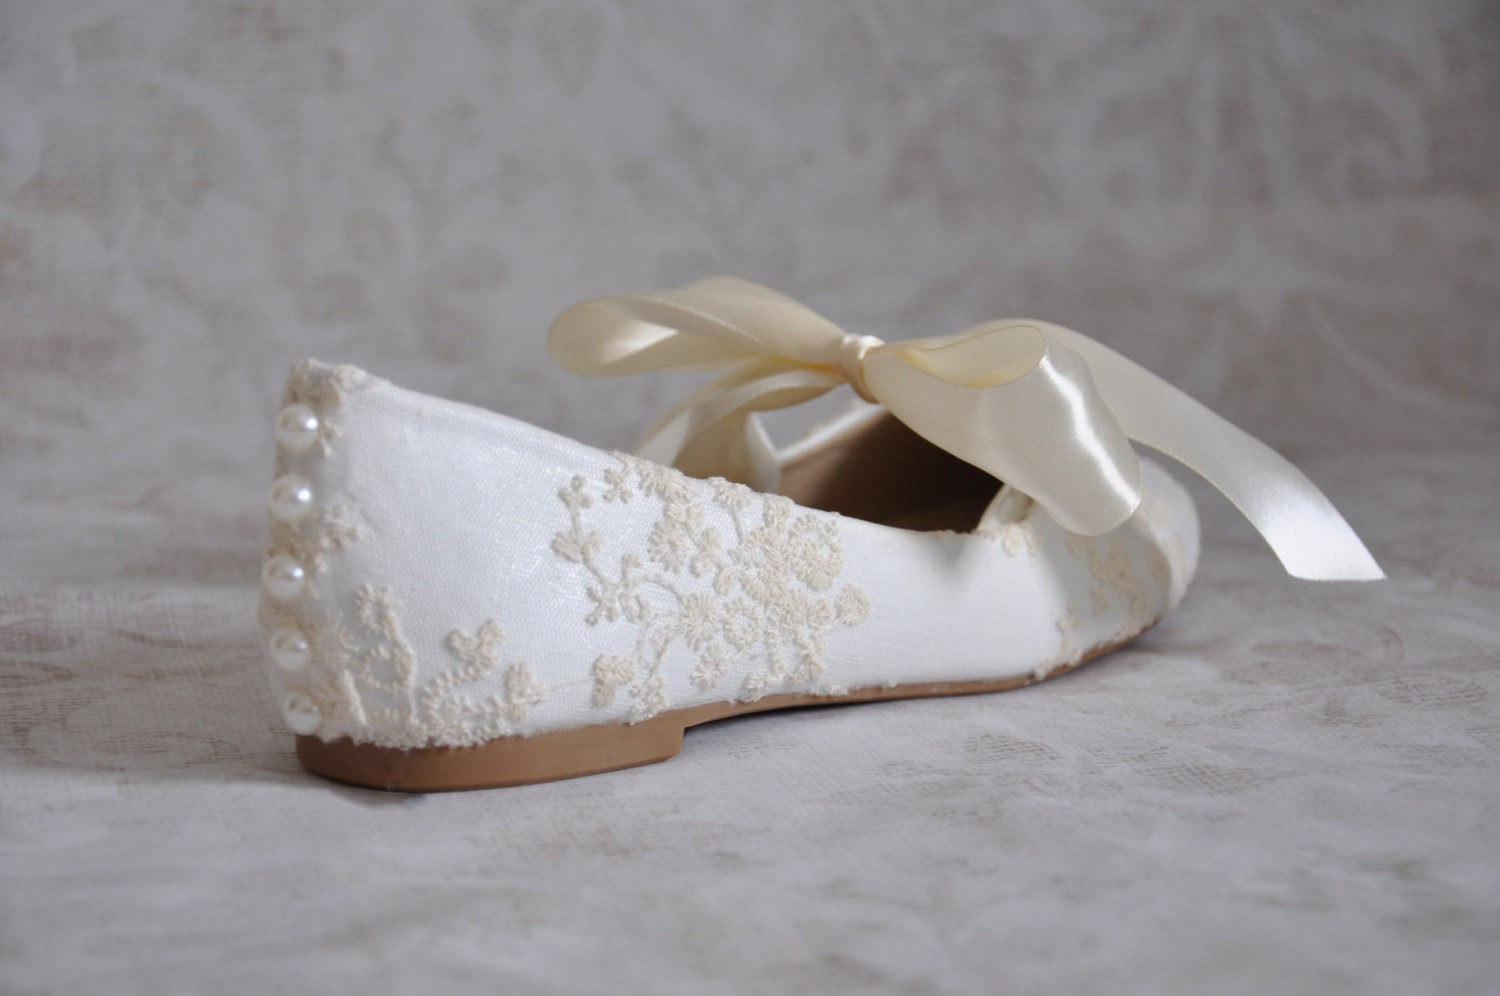 flat lace bridal shoes - photo #11